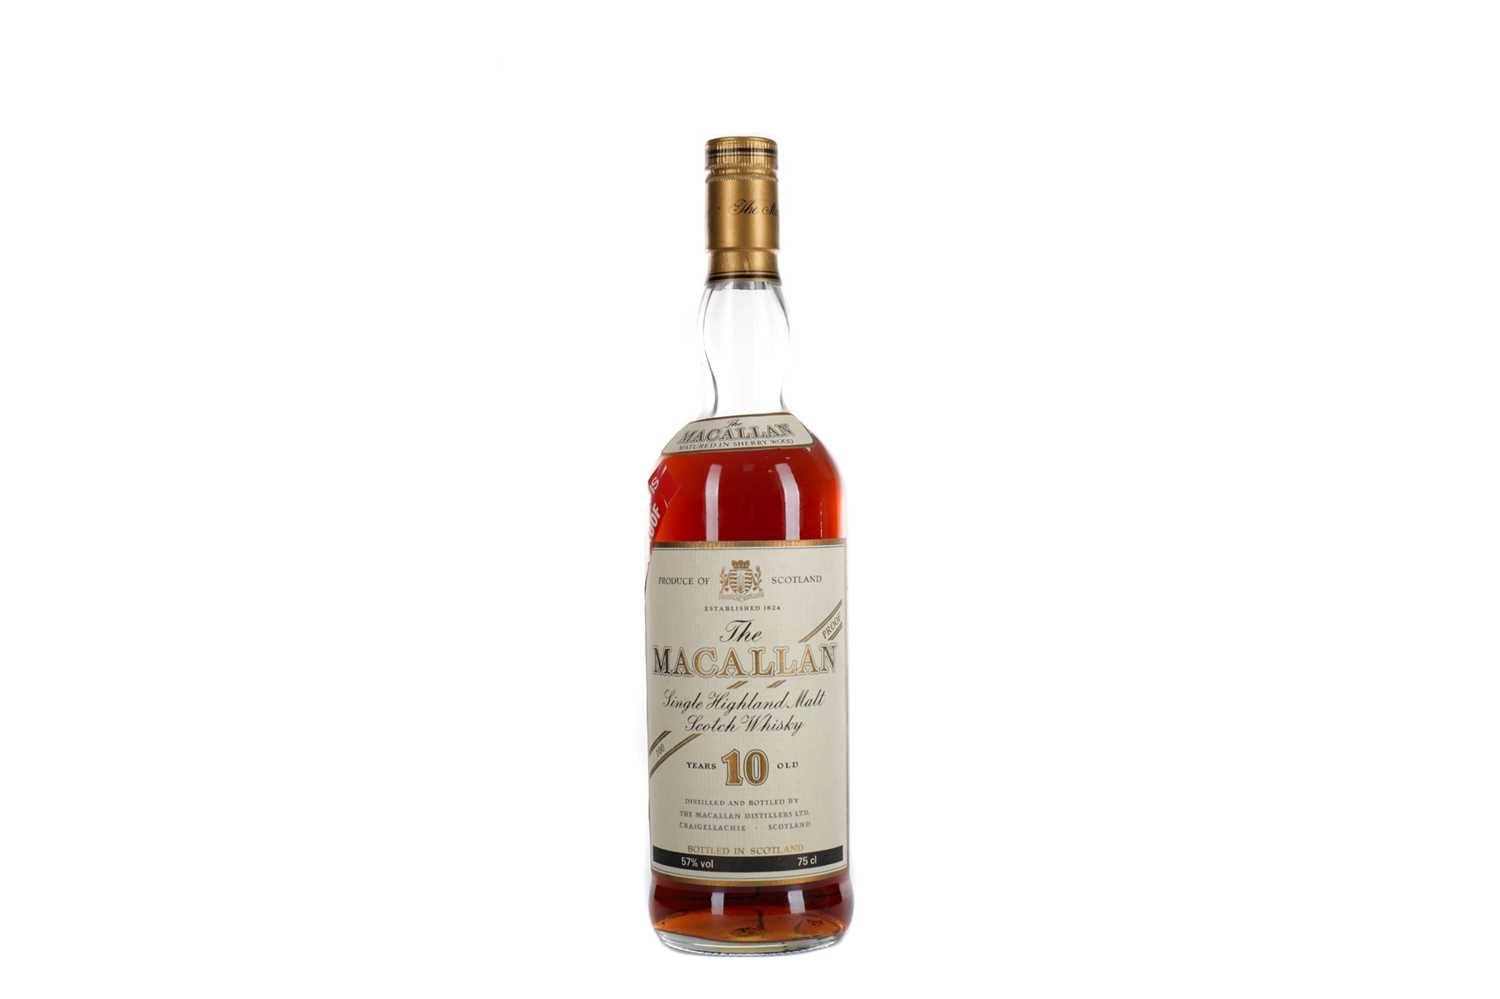 Lot 144 - MACALLAN 10 YEARS OLD 100 PROOF